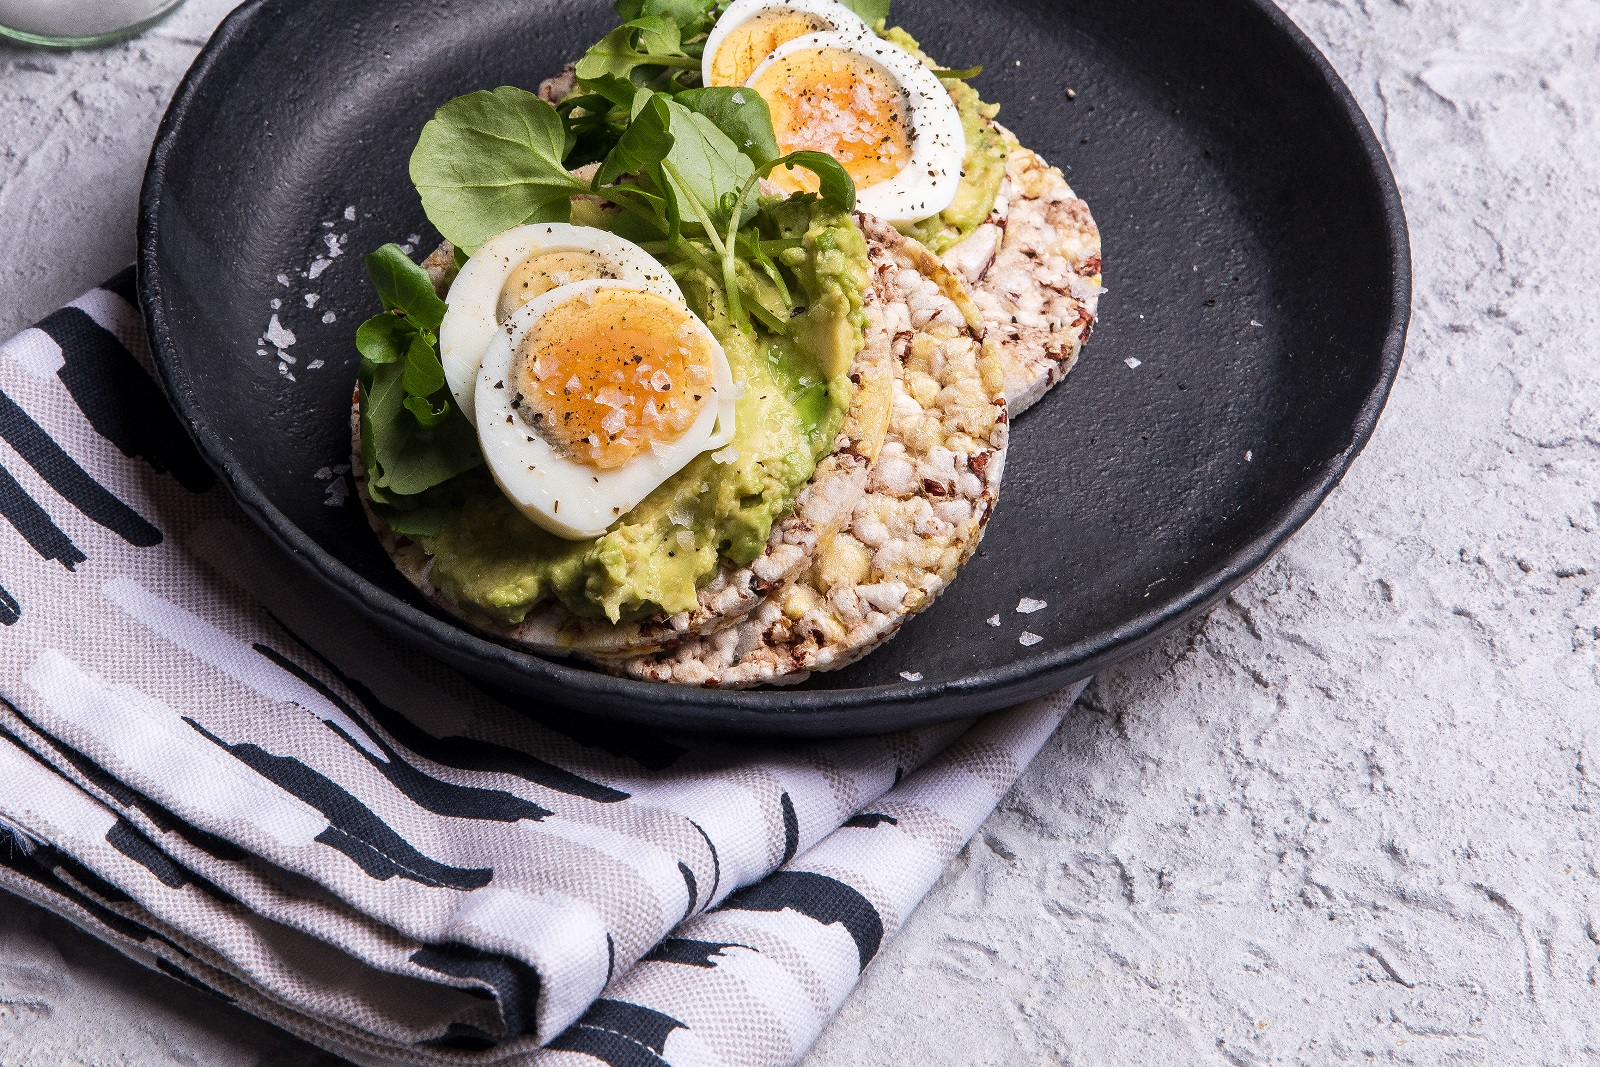 Avocado, Boiled Egg & Watercress for breakfast with CORN THINS slices